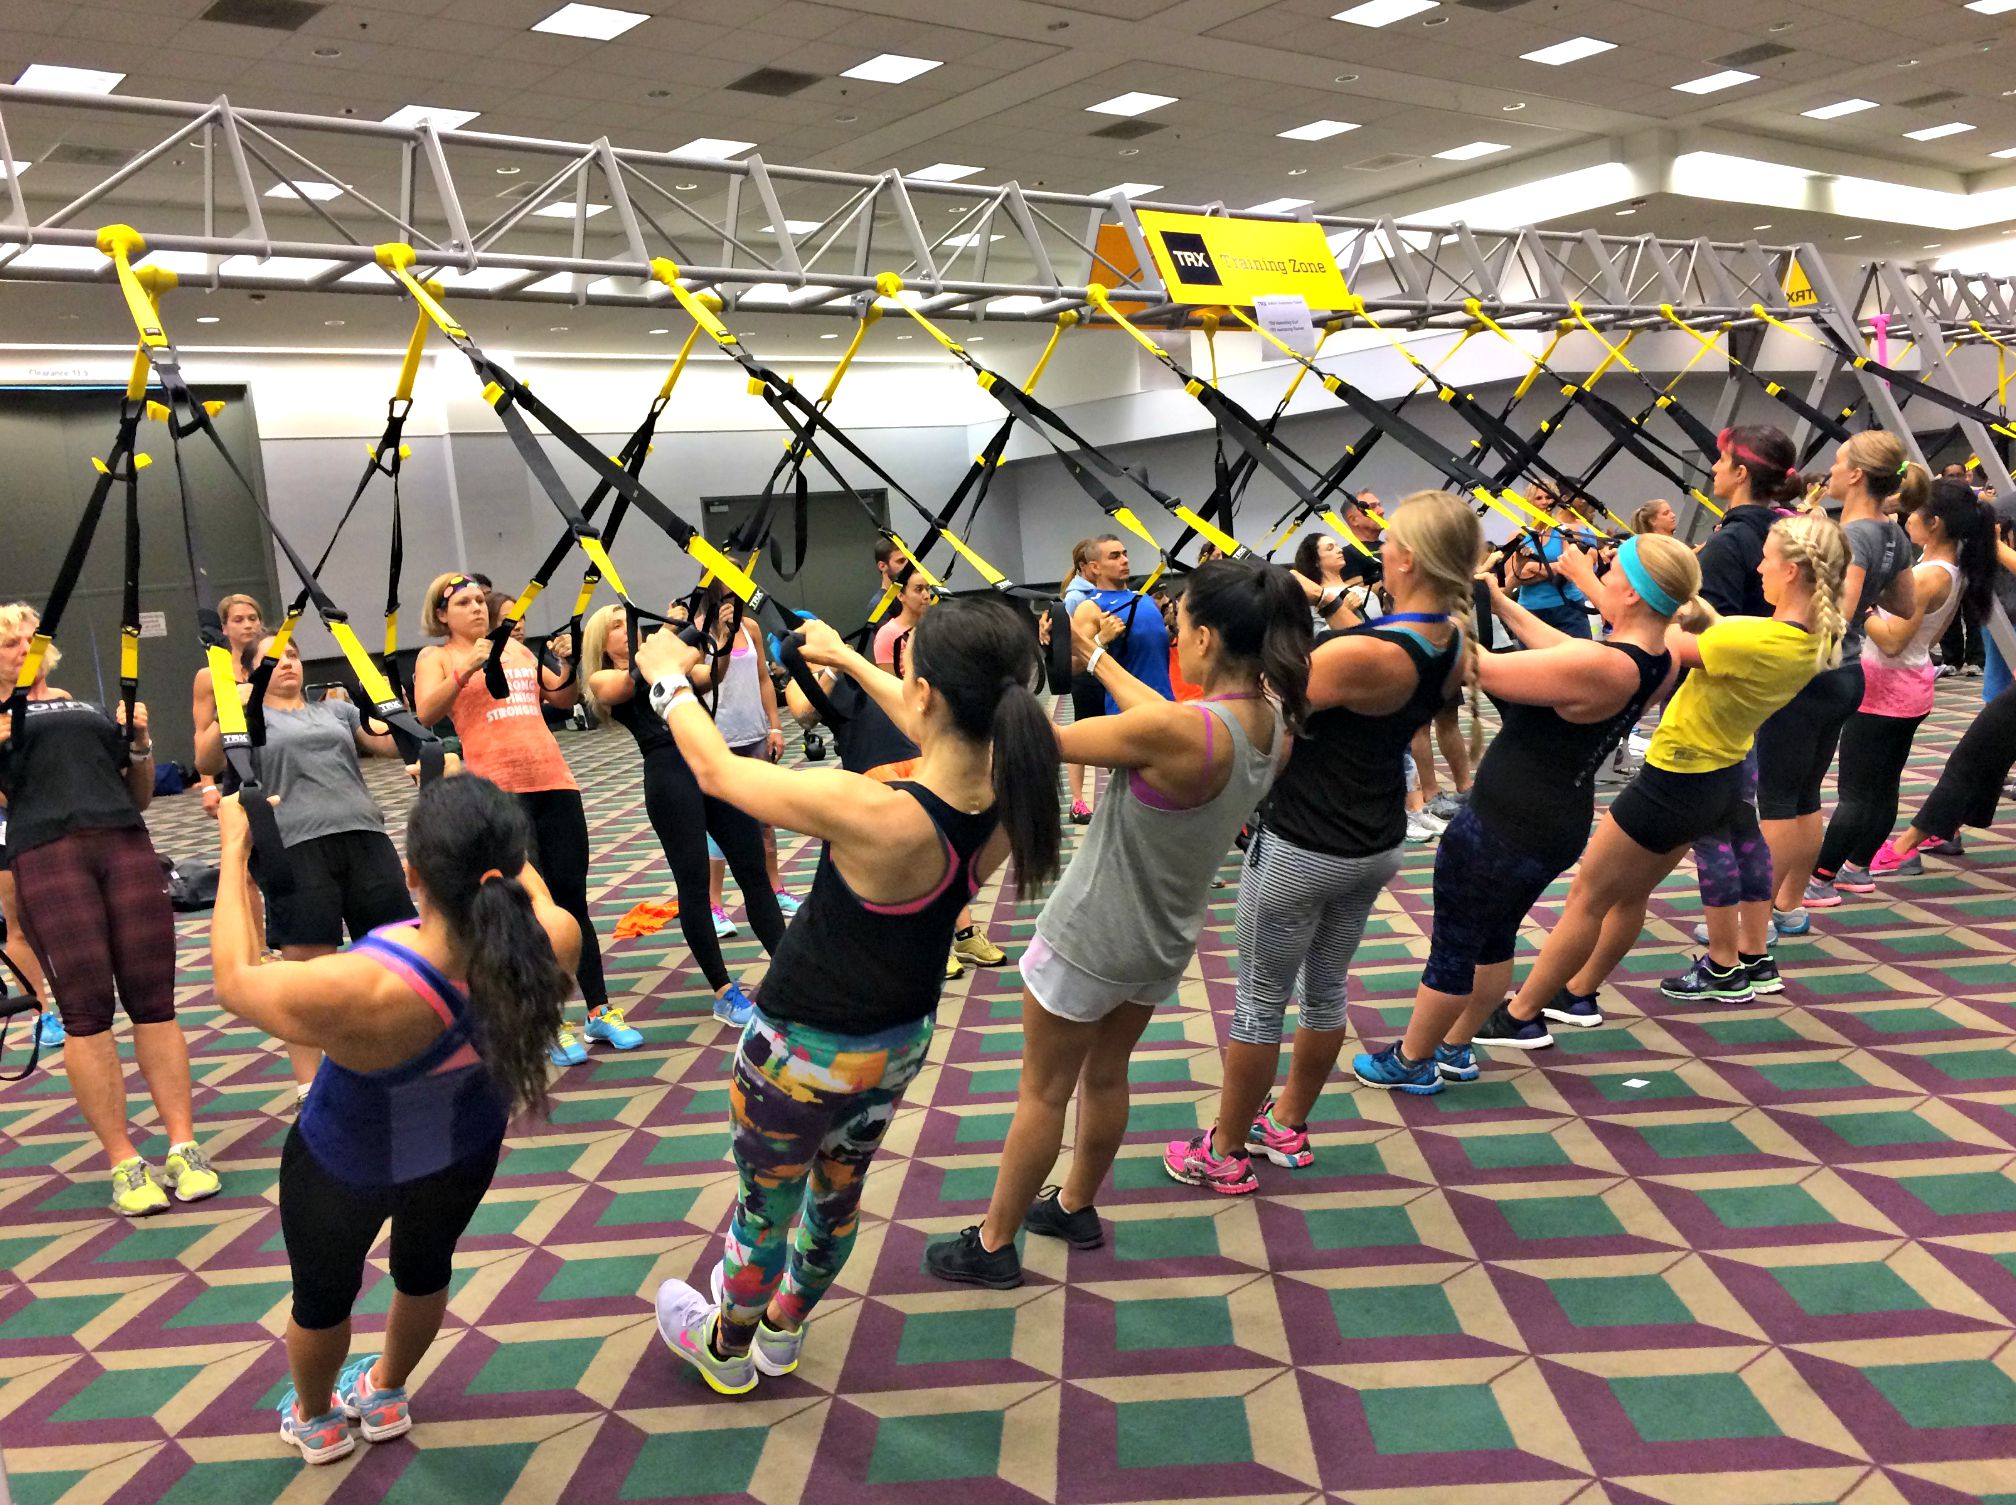 TRX modality class at IDEA